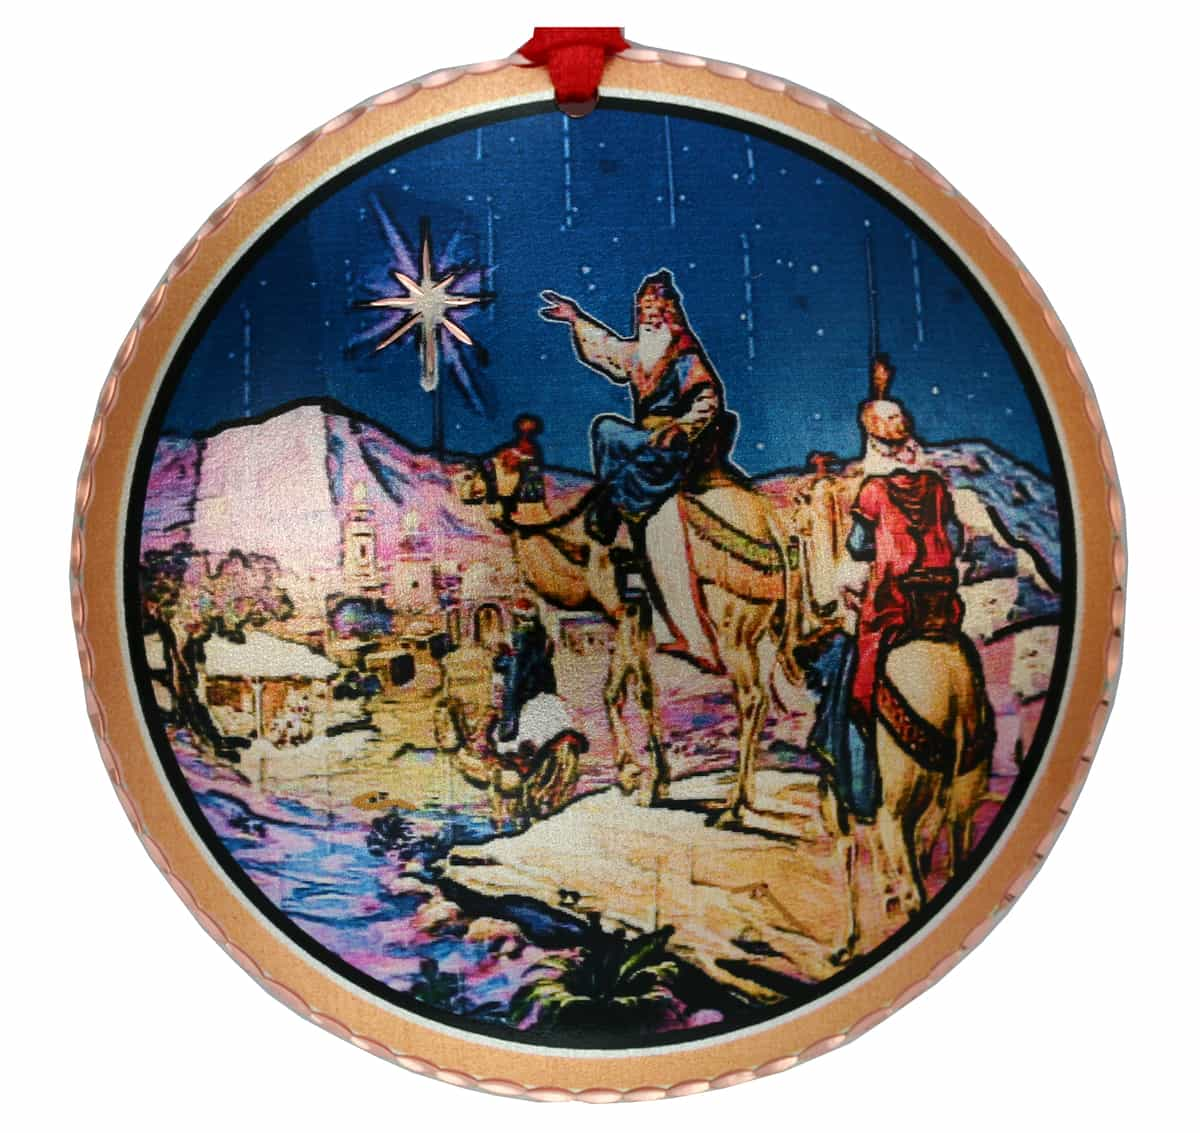 Handcrafted Copper Christmas Tree Ornament Created in Colorful Wise Men Artwork